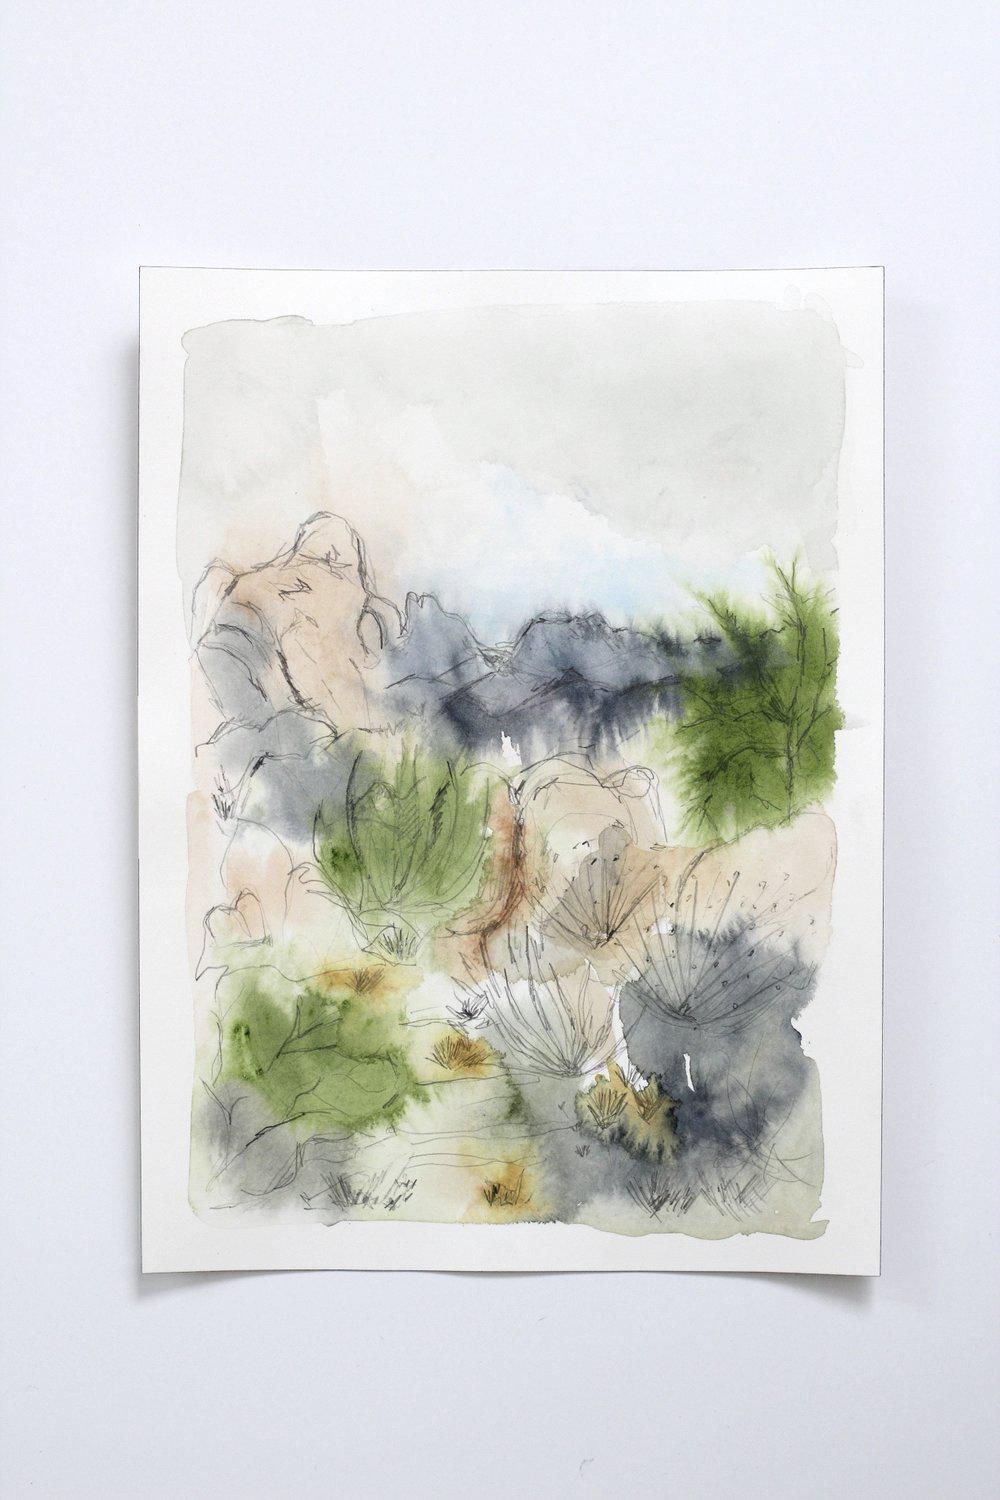 Desert Landscape with Graphite